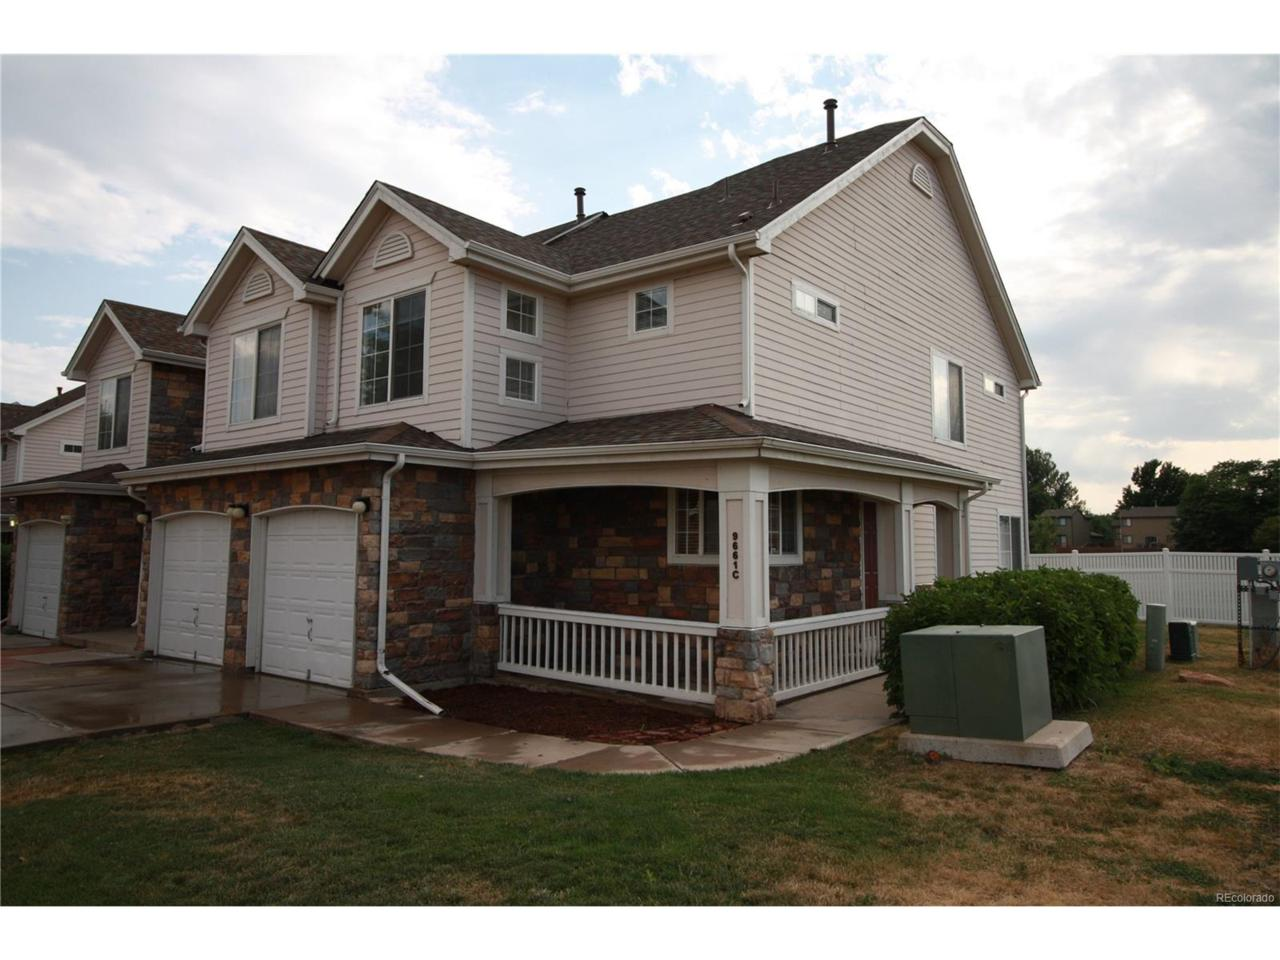 9661 Green Court C, Westminster, CO 80031 (MLS #9483246) :: 8z Real Estate